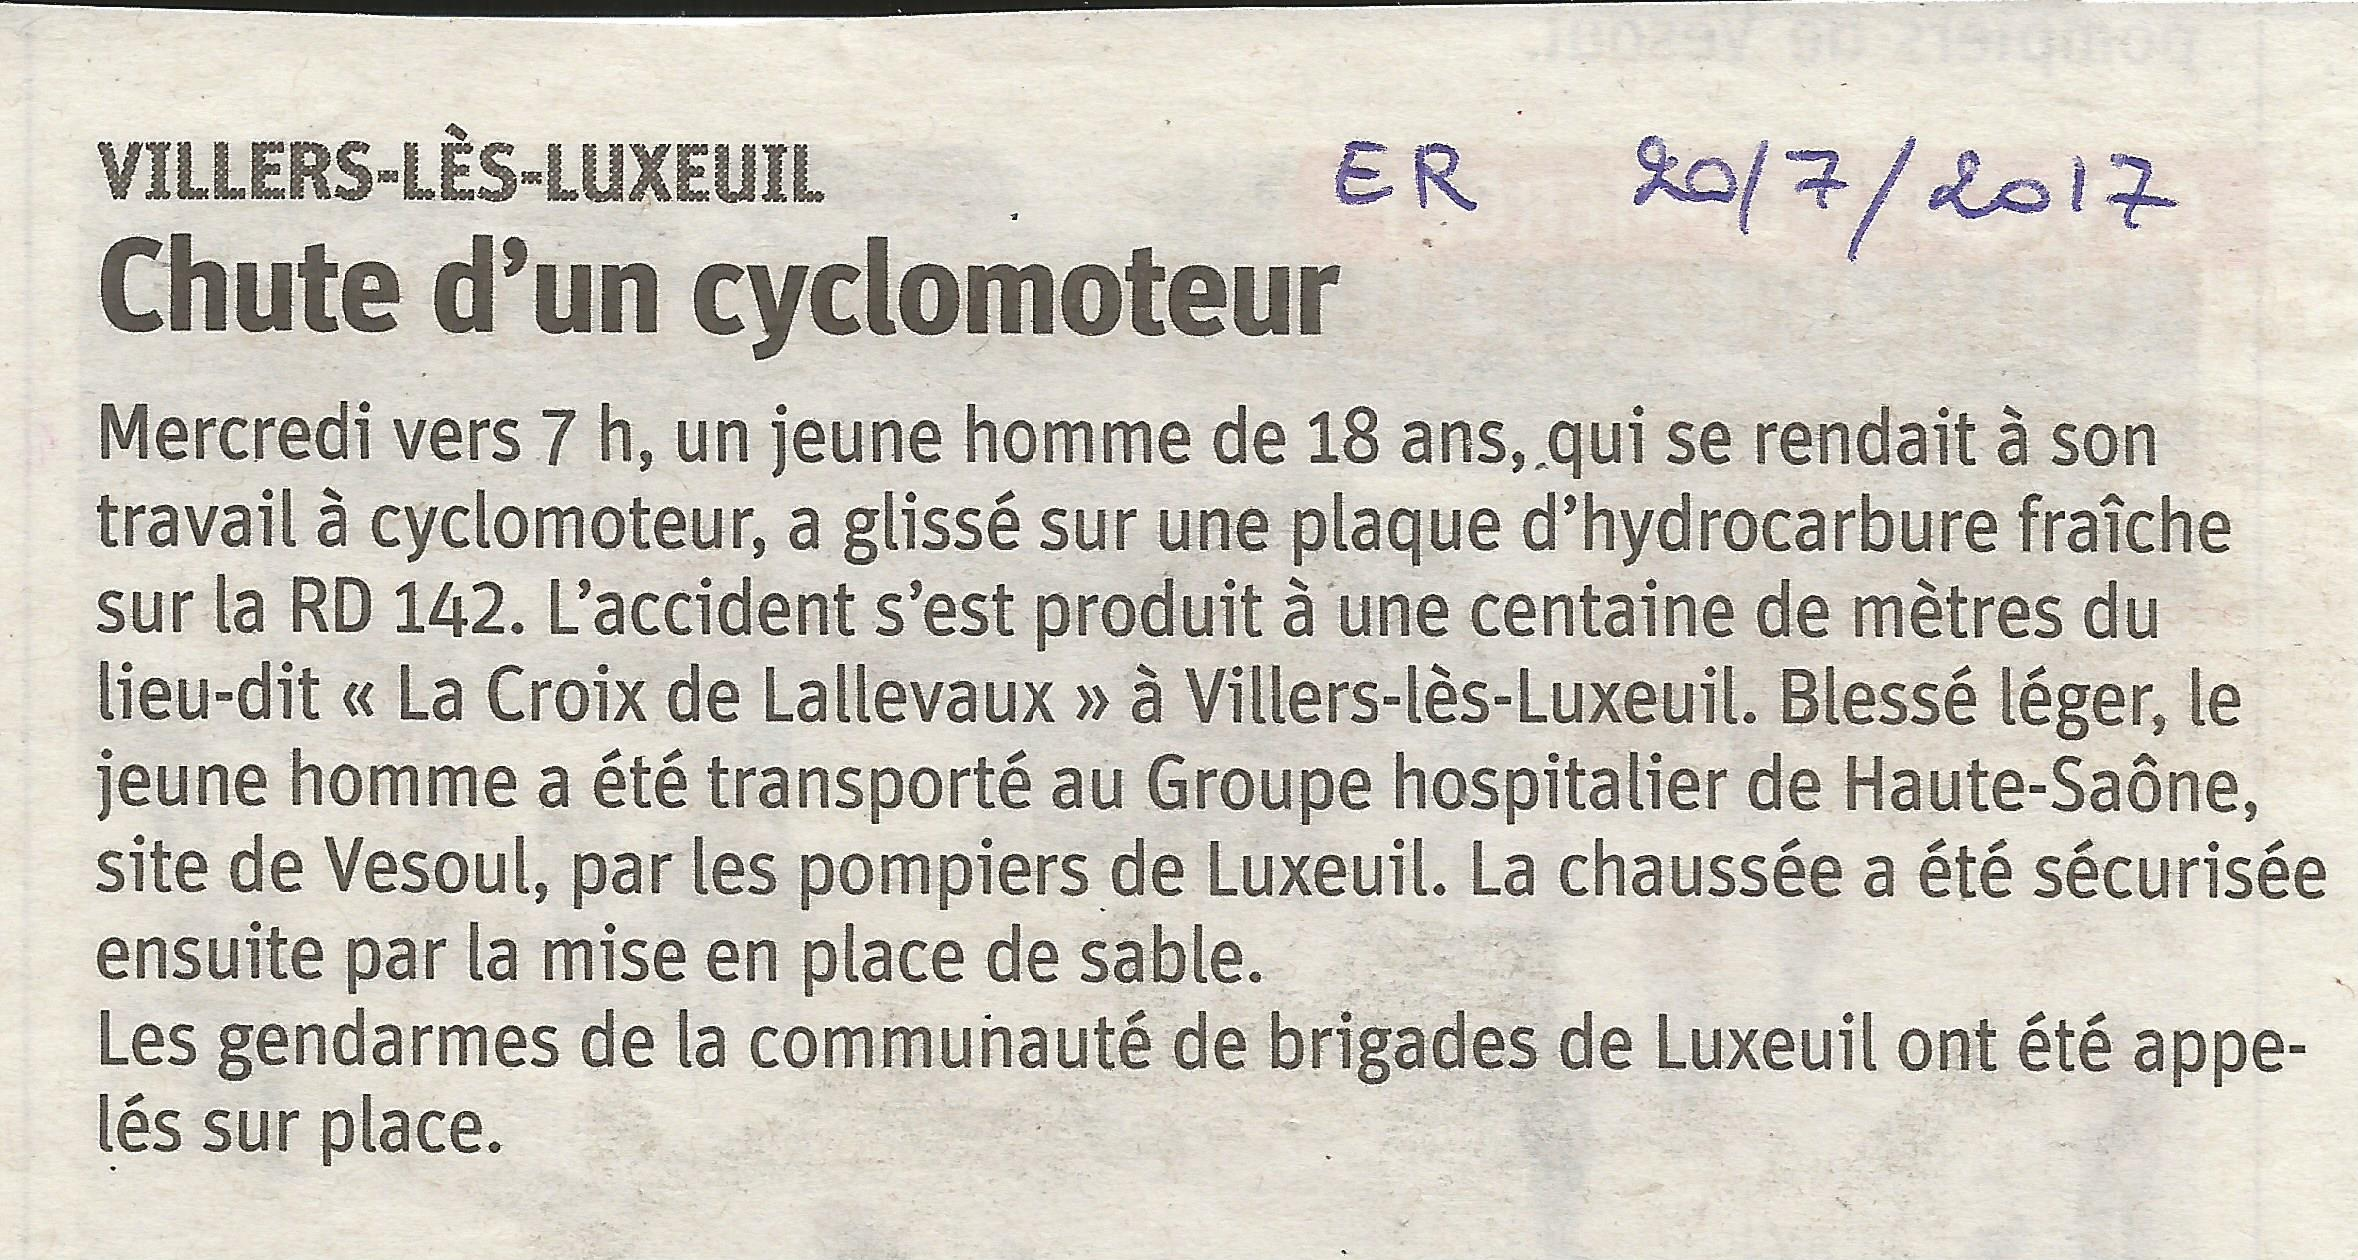 https://www.villers-les-luxeuil.com/projets/villers/files/images/2017_Mairie/Presse/2017_07_20.jpg